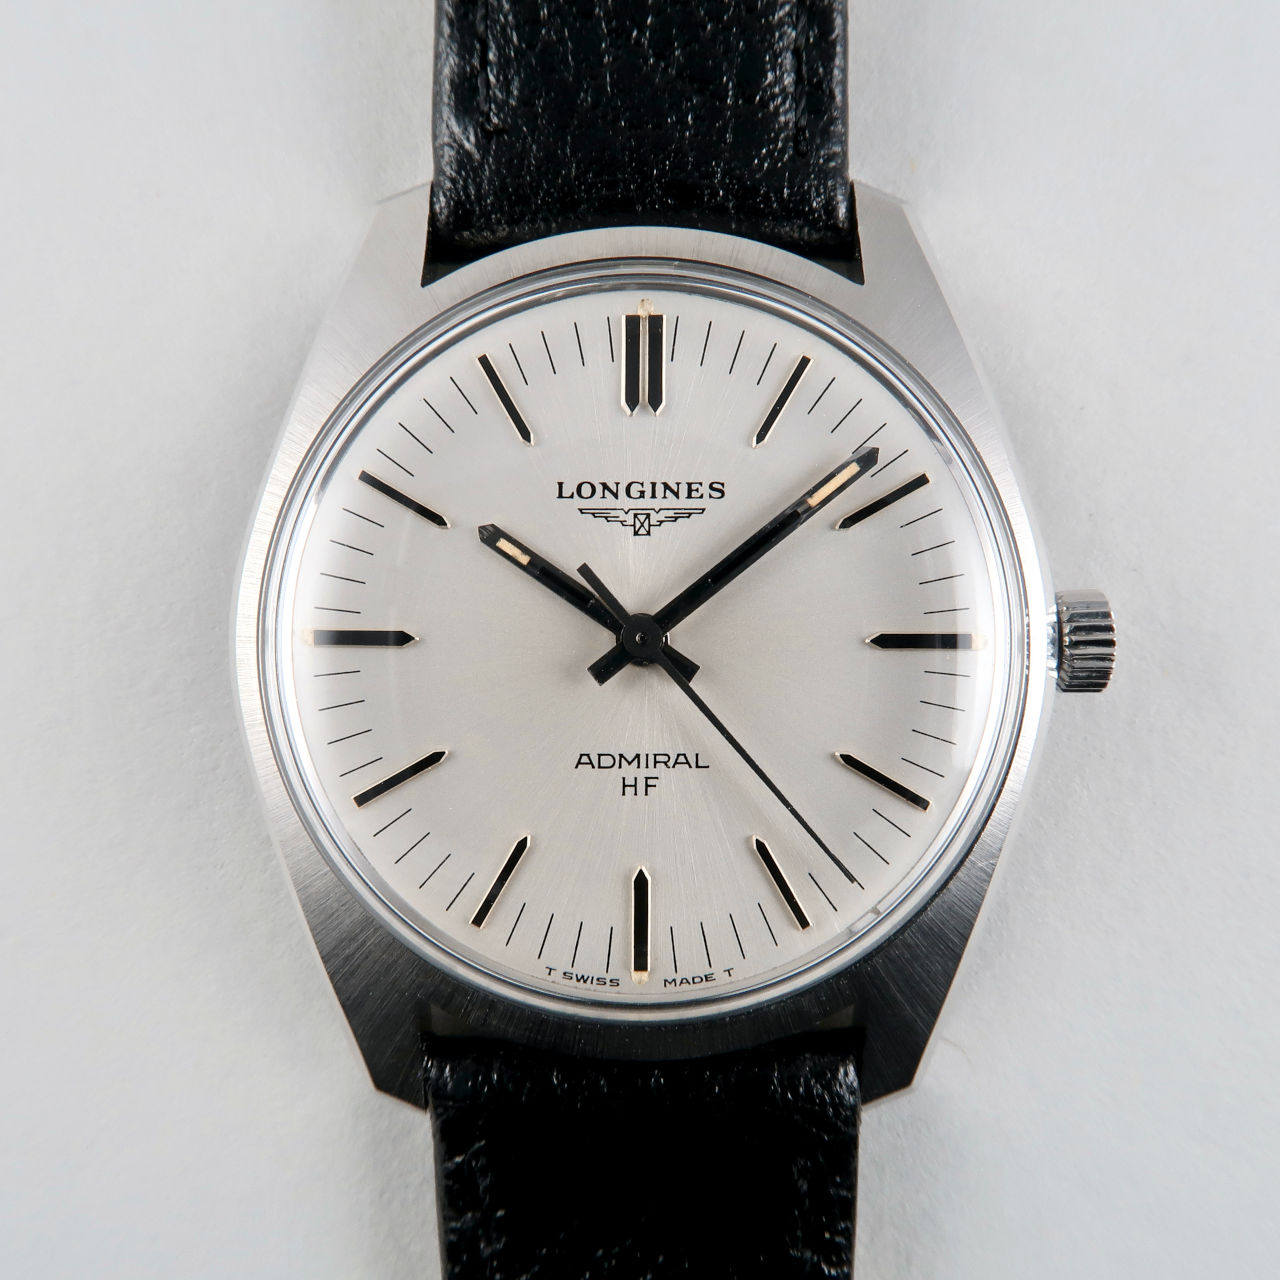 Longines Admiral Ref. 2301 -2 circa 1973   steel manual wristwatch with hack feature